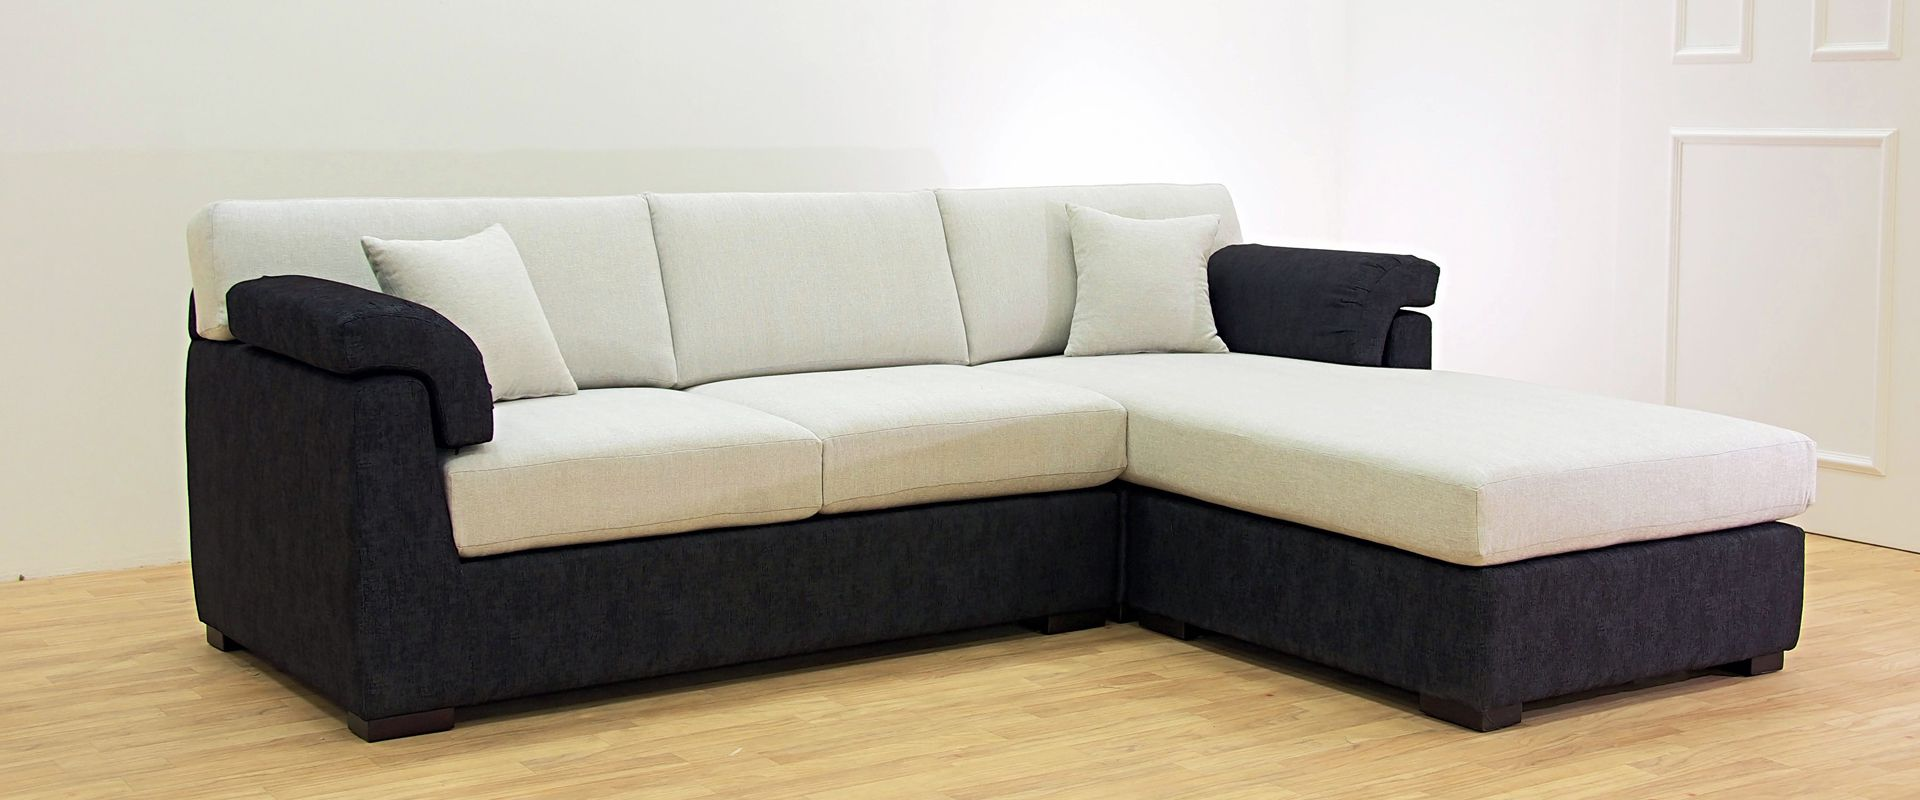 Sofa bed suppliers uae brokeasshome